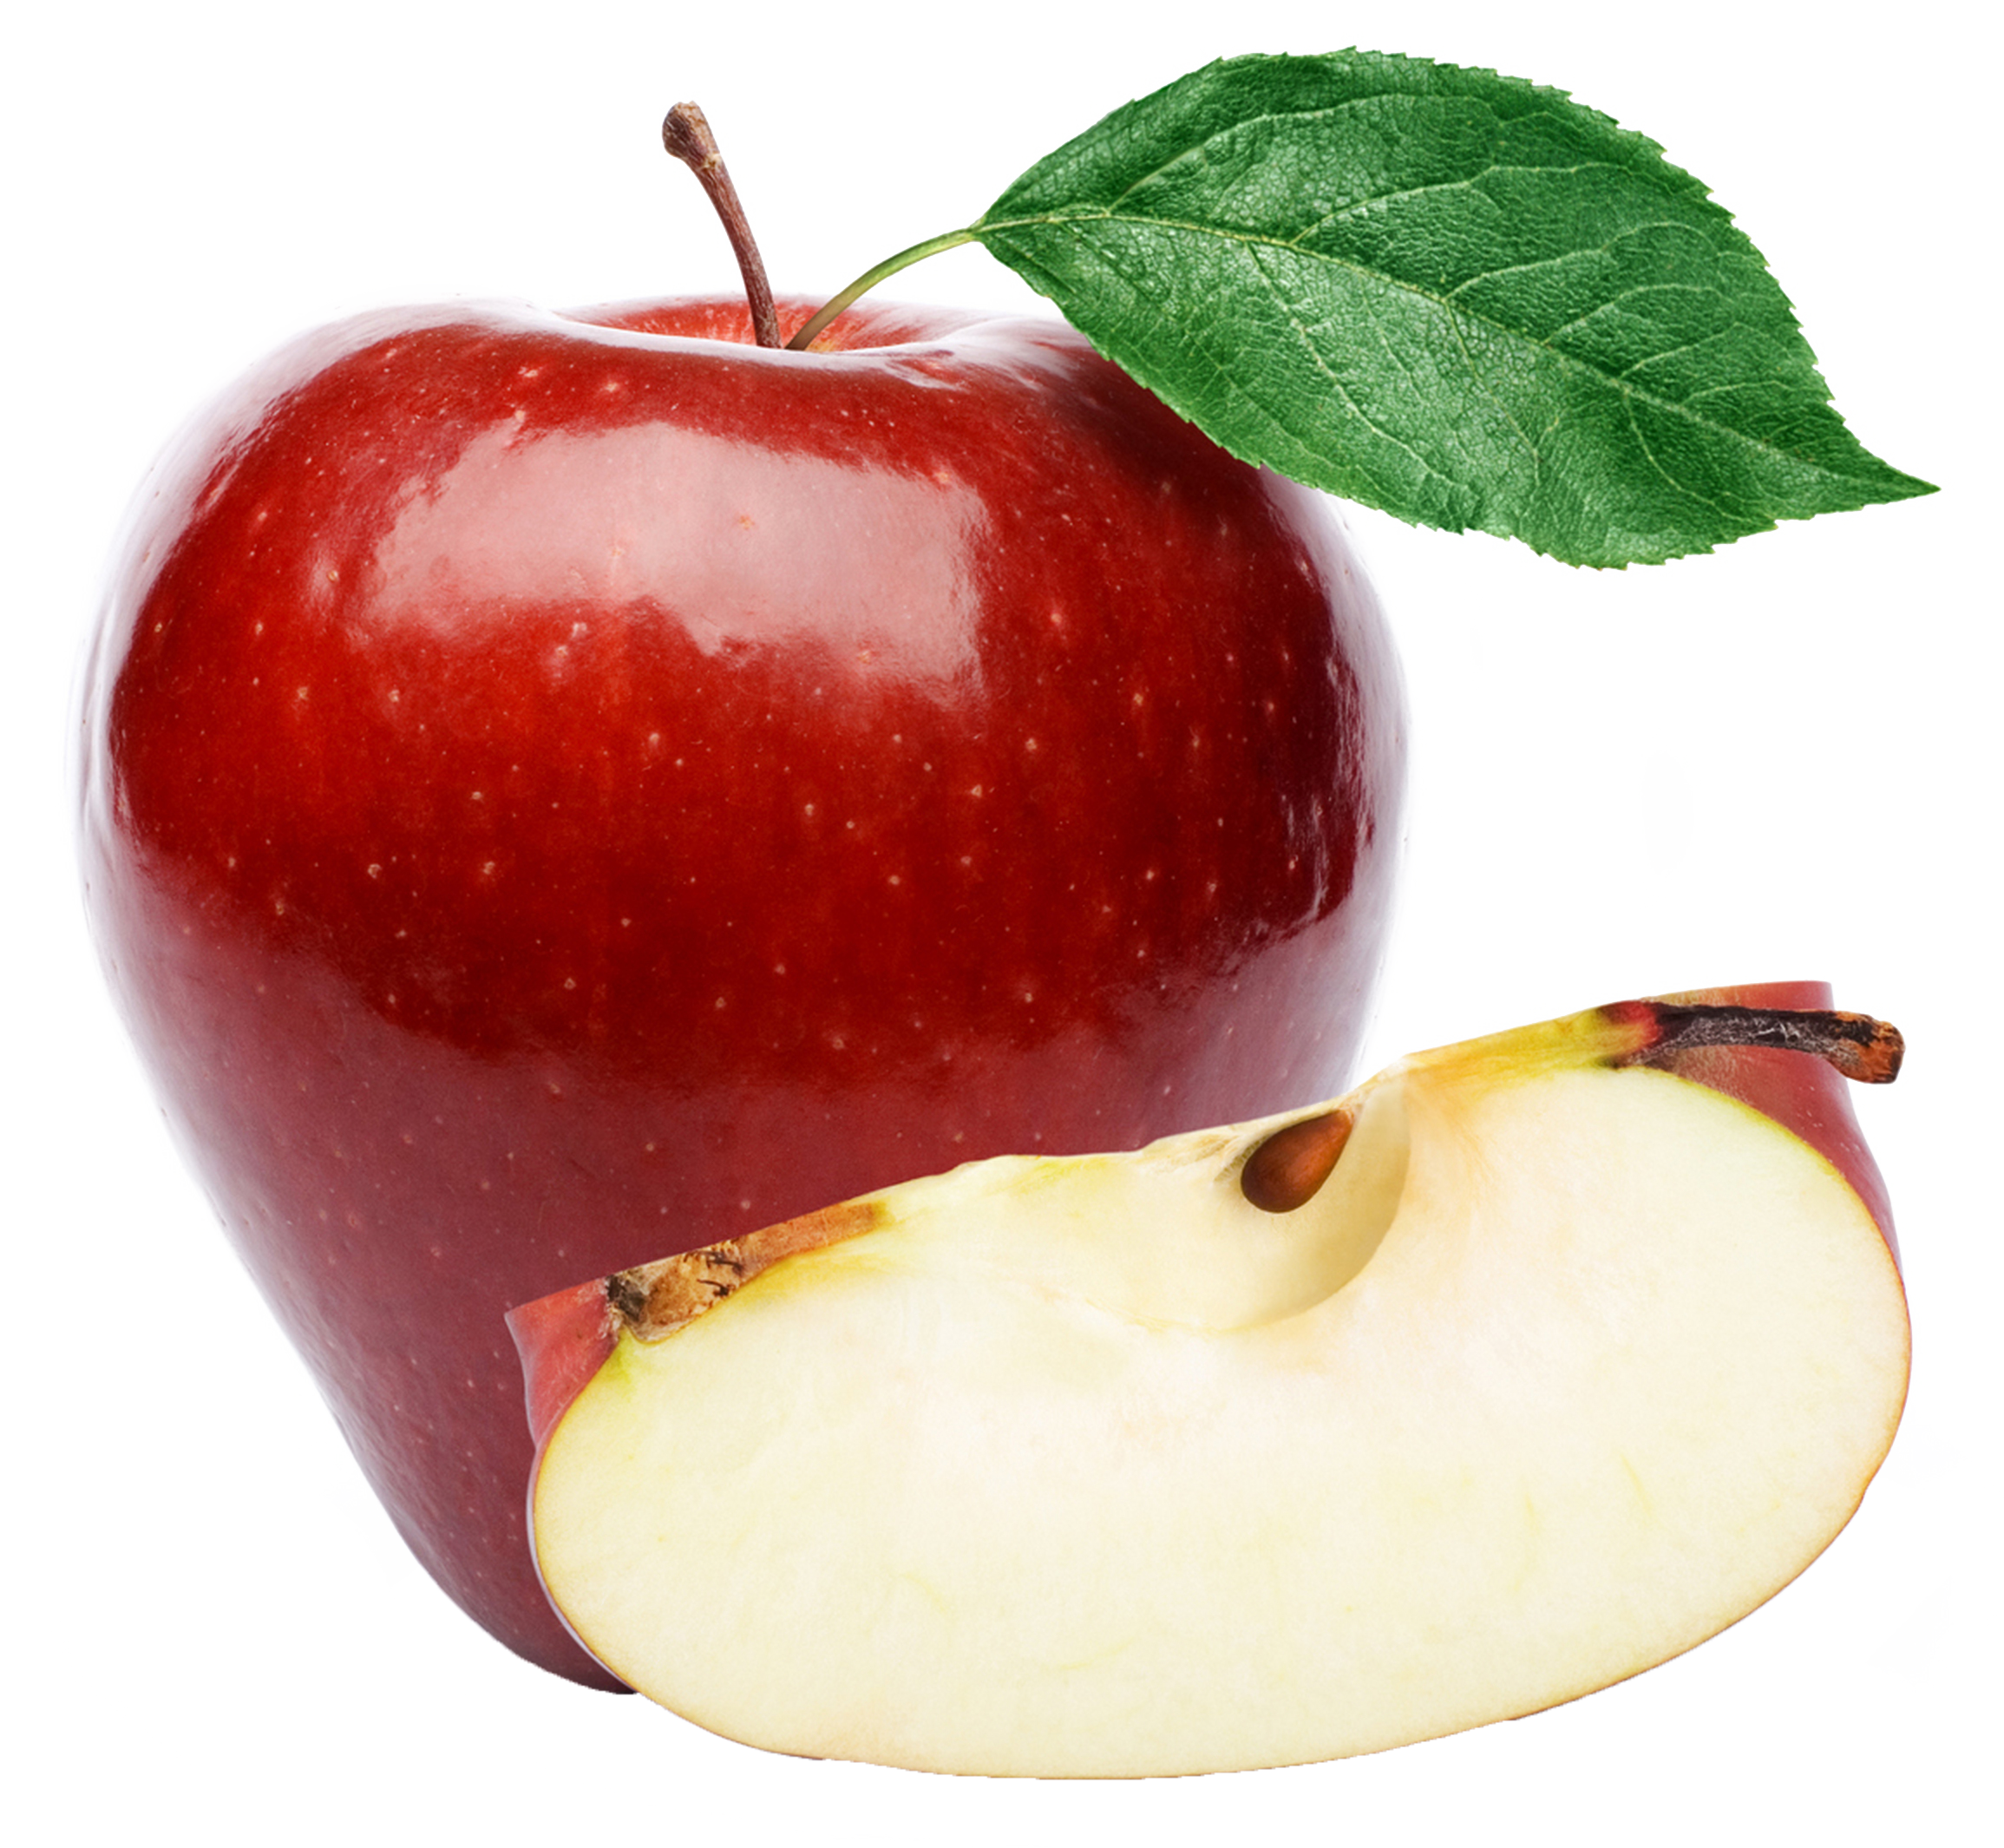 Large red apple png. Grapes clipart autumn fruit